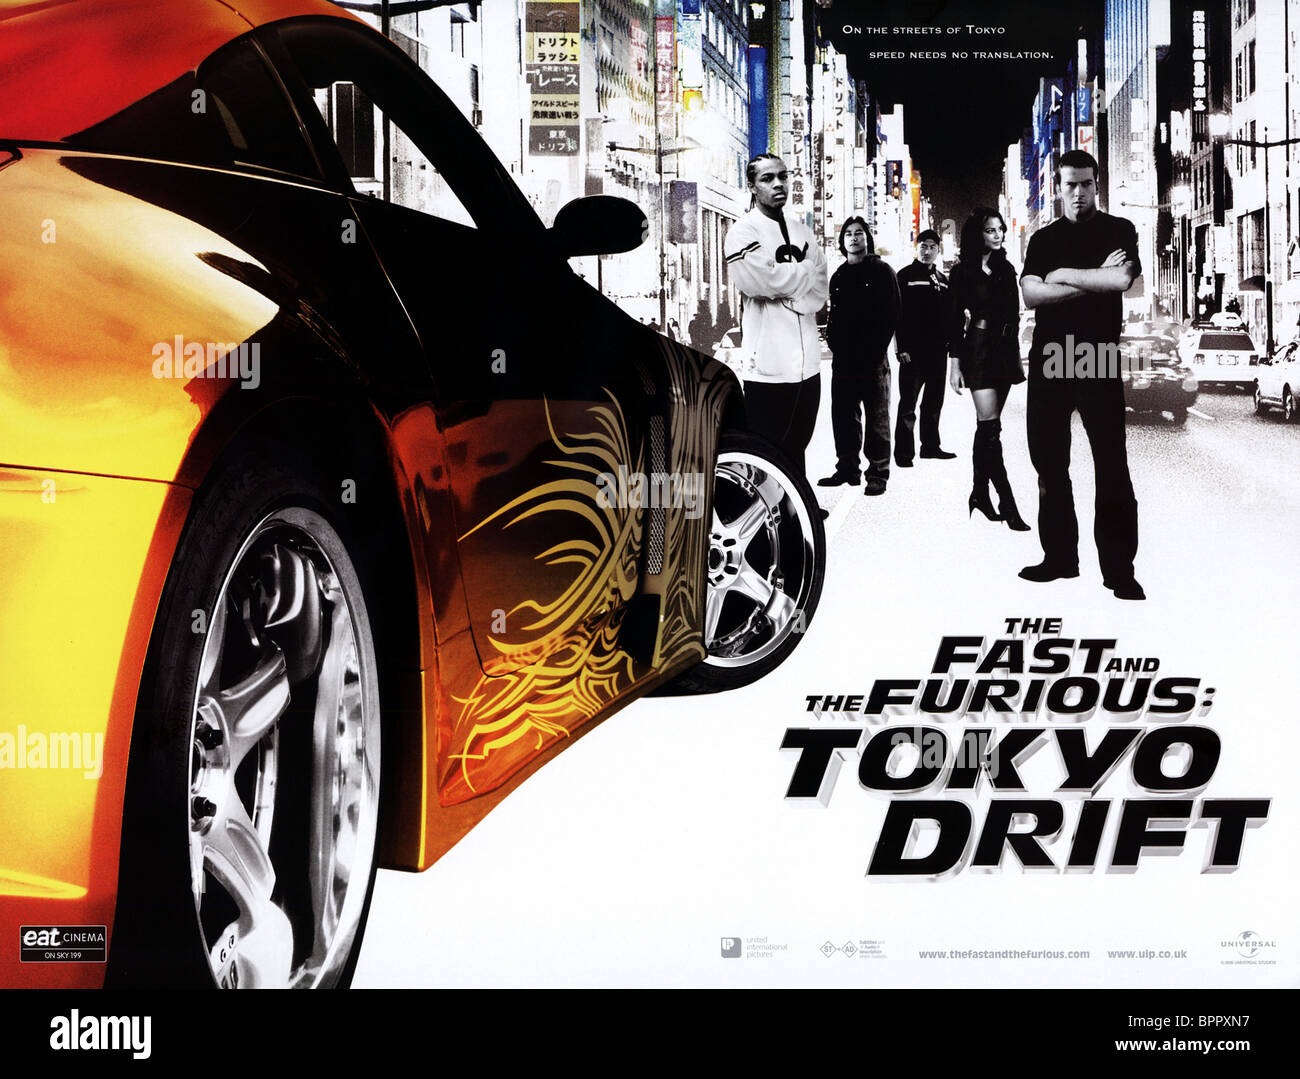 film poster the fast and the furious 3 the fast and the furious stock photo royalty free image. Black Bedroom Furniture Sets. Home Design Ideas